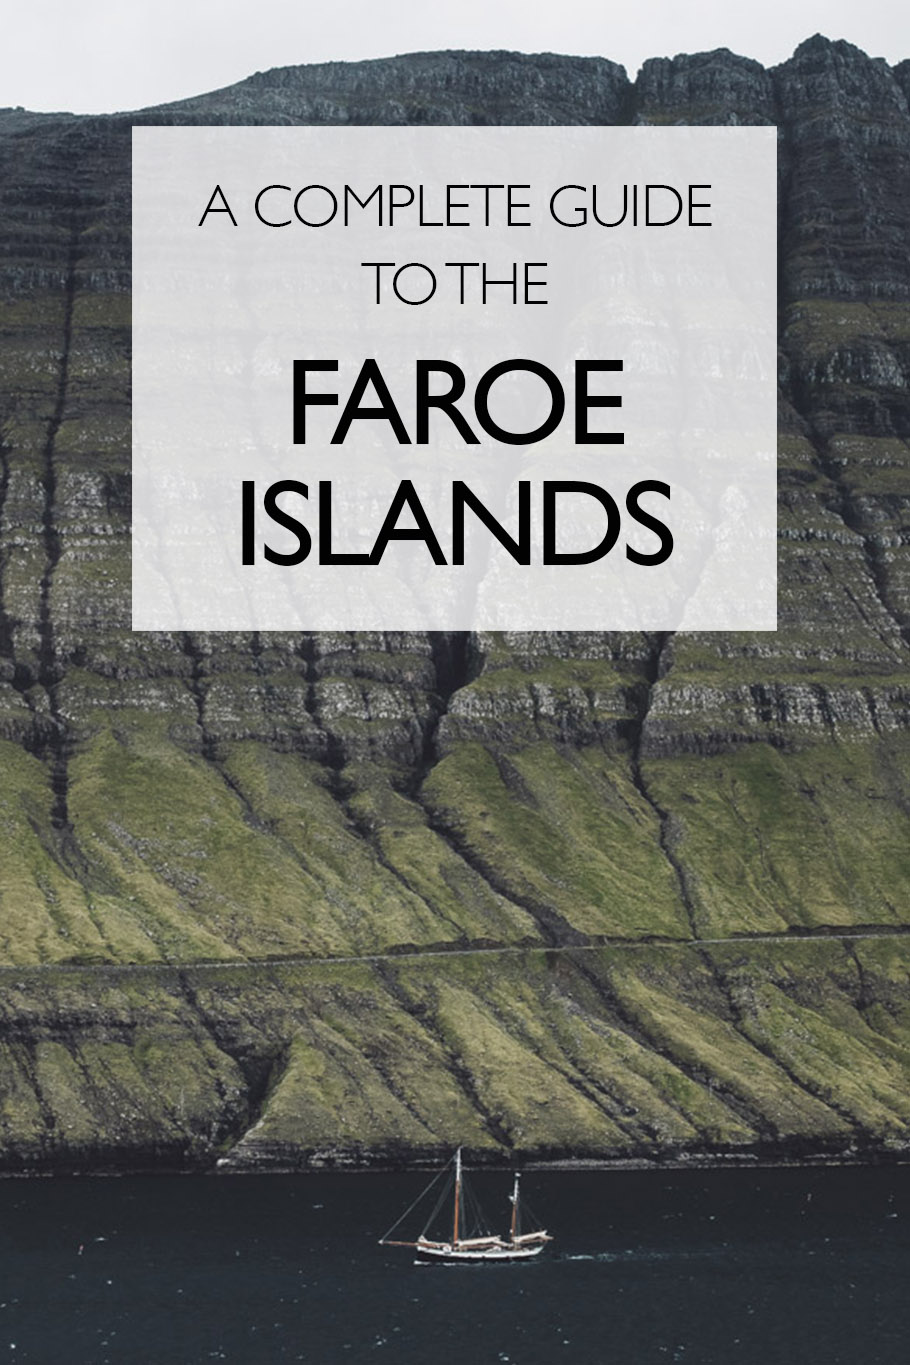 A Complete Beginner's Guide To Travelling the Faroe Islands - The Sandy Feet